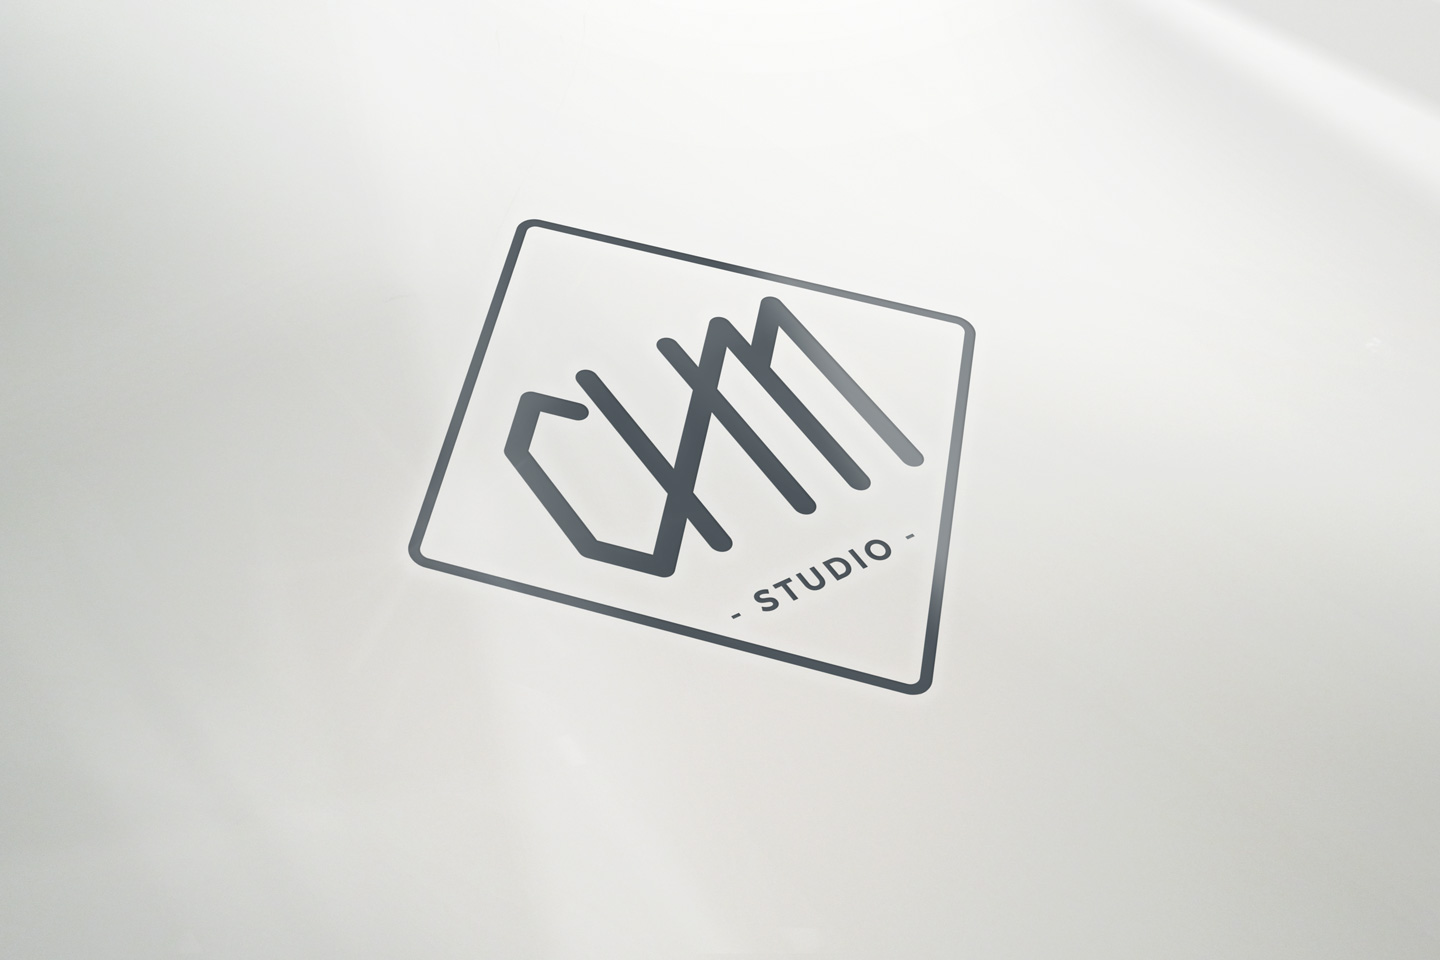 logo_perspective_chm